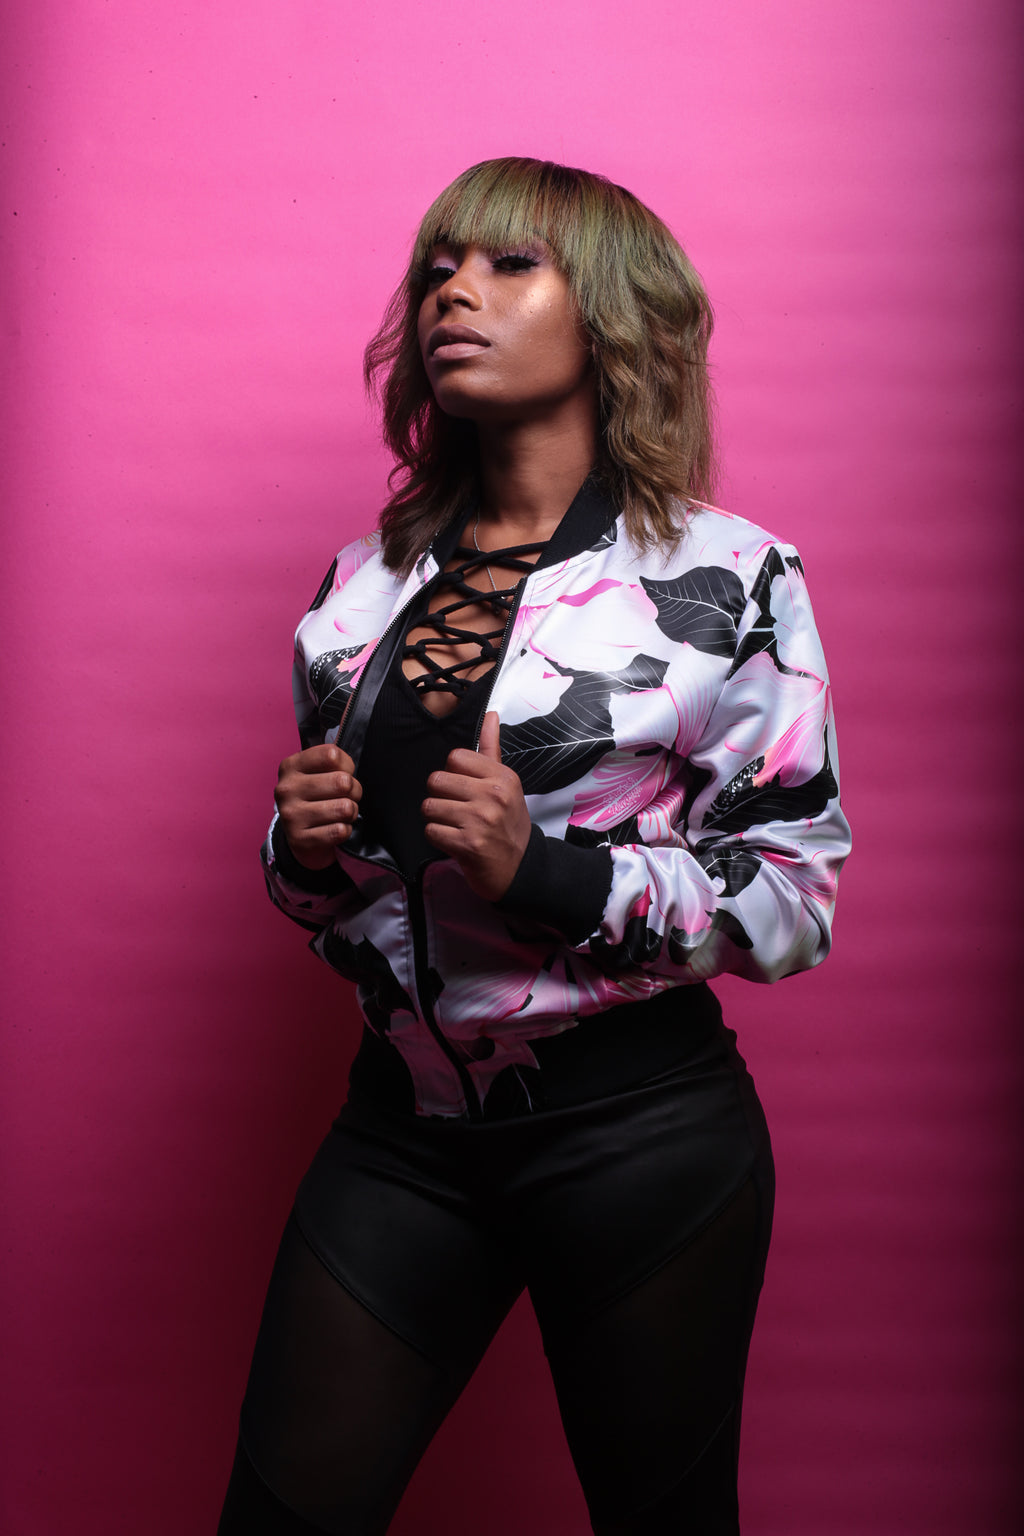 Pink Blossom Bomber Jacket By Mark Loring